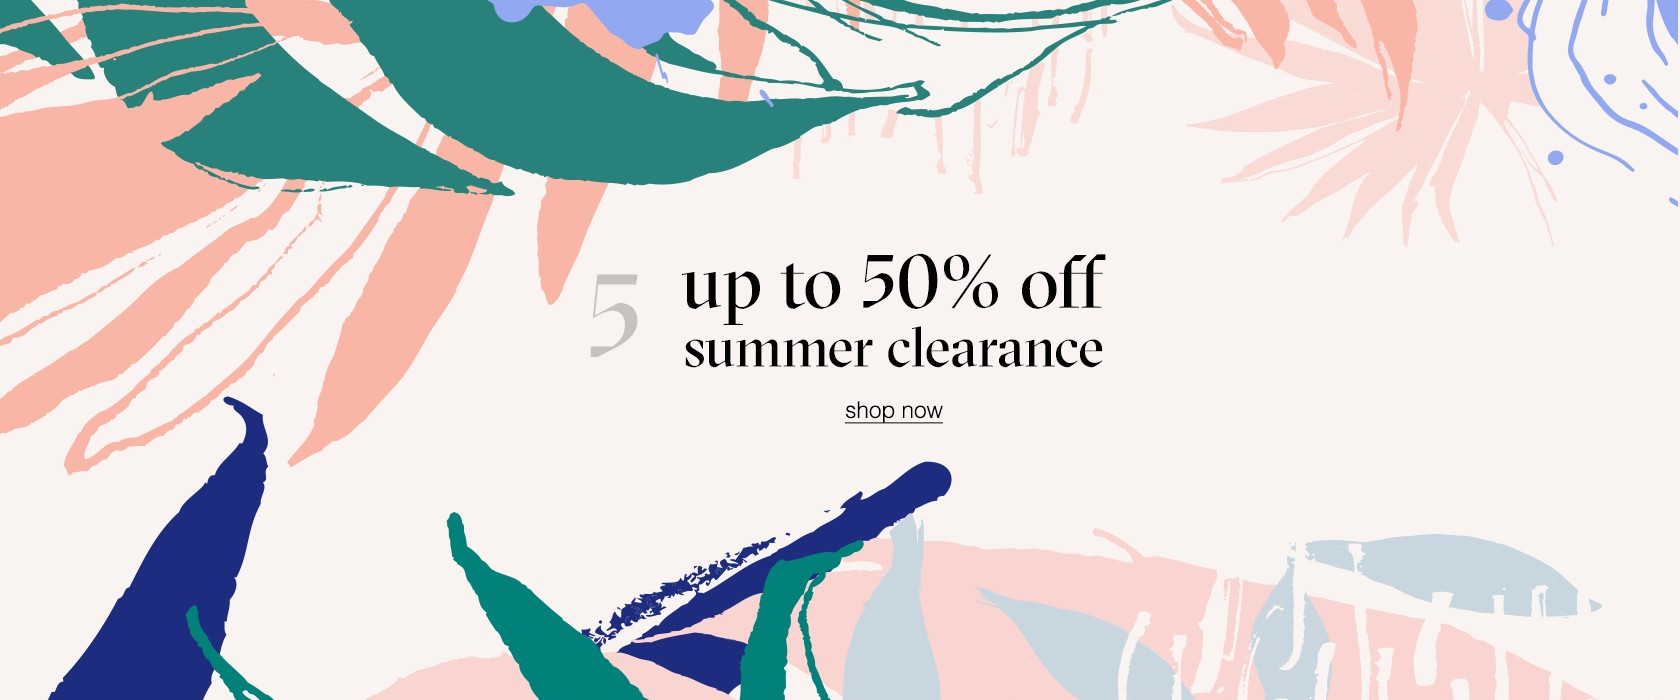 up to 50% off summer clearance